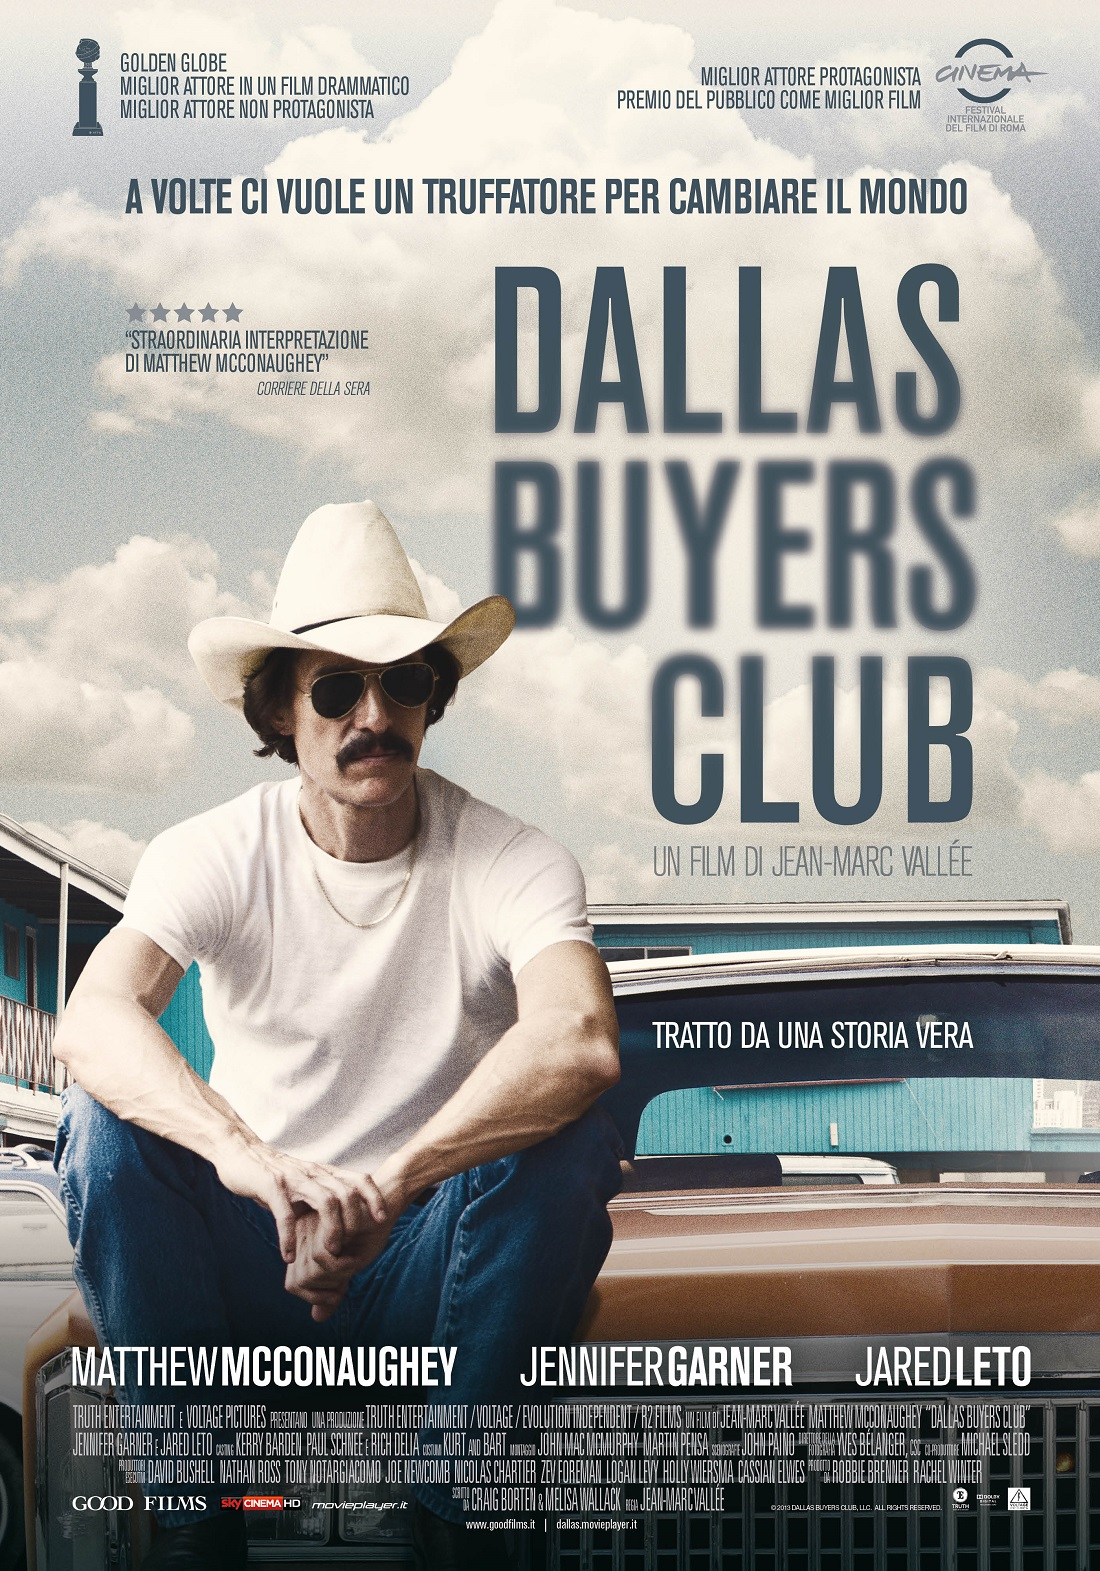 Dallas Buyers Club Movie Trailer - Viewing Gallery